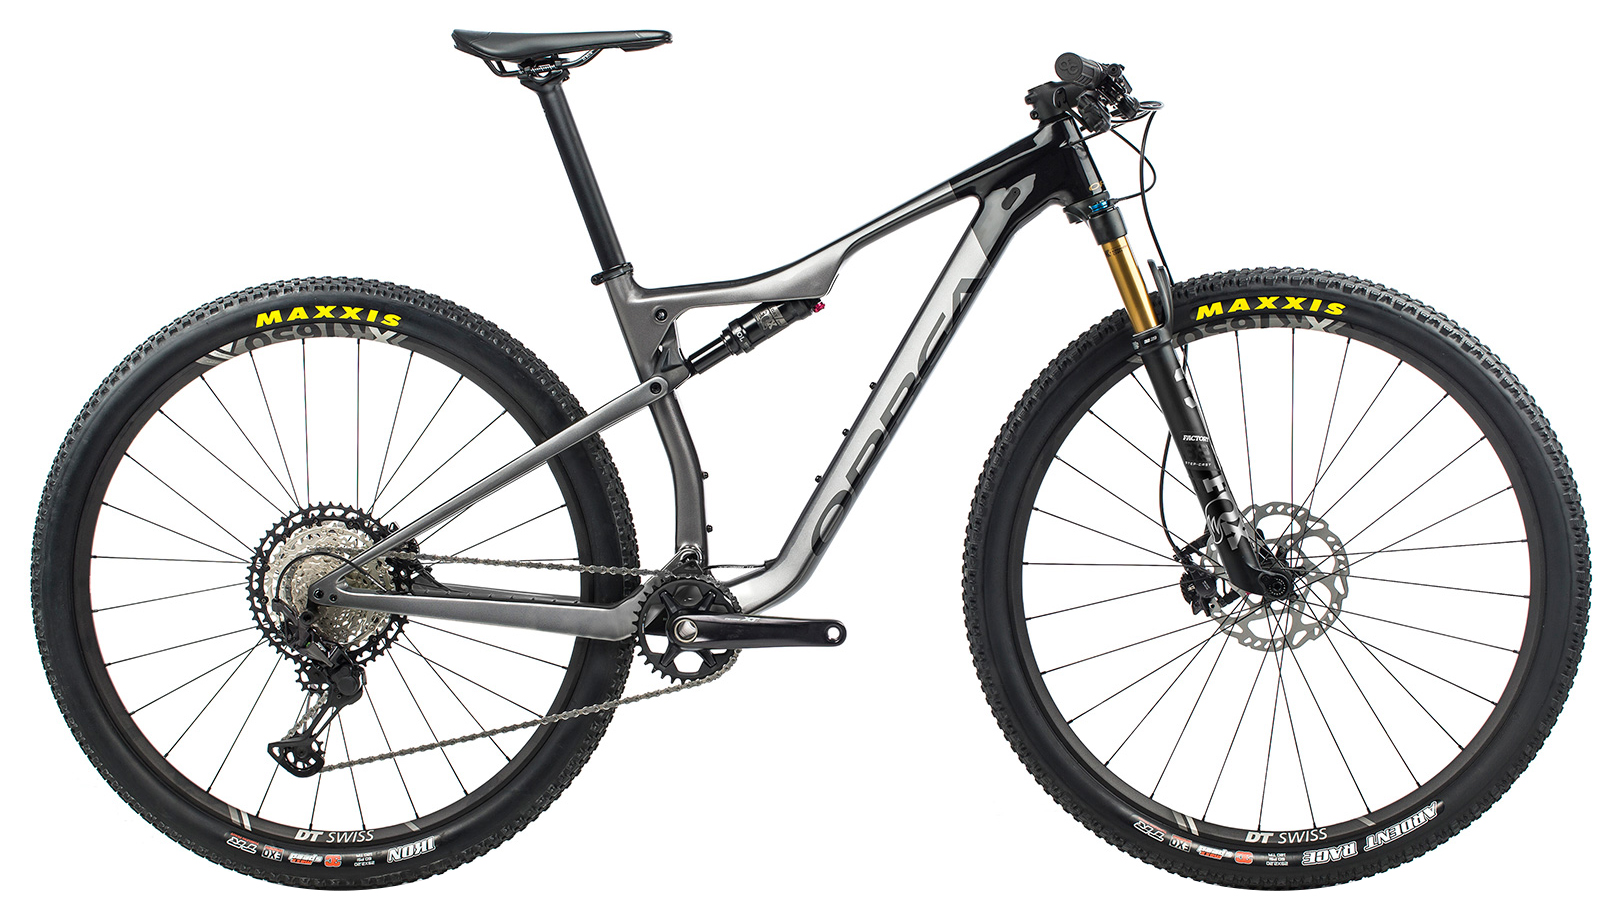 grey full suspension mountain bike with a dropper post